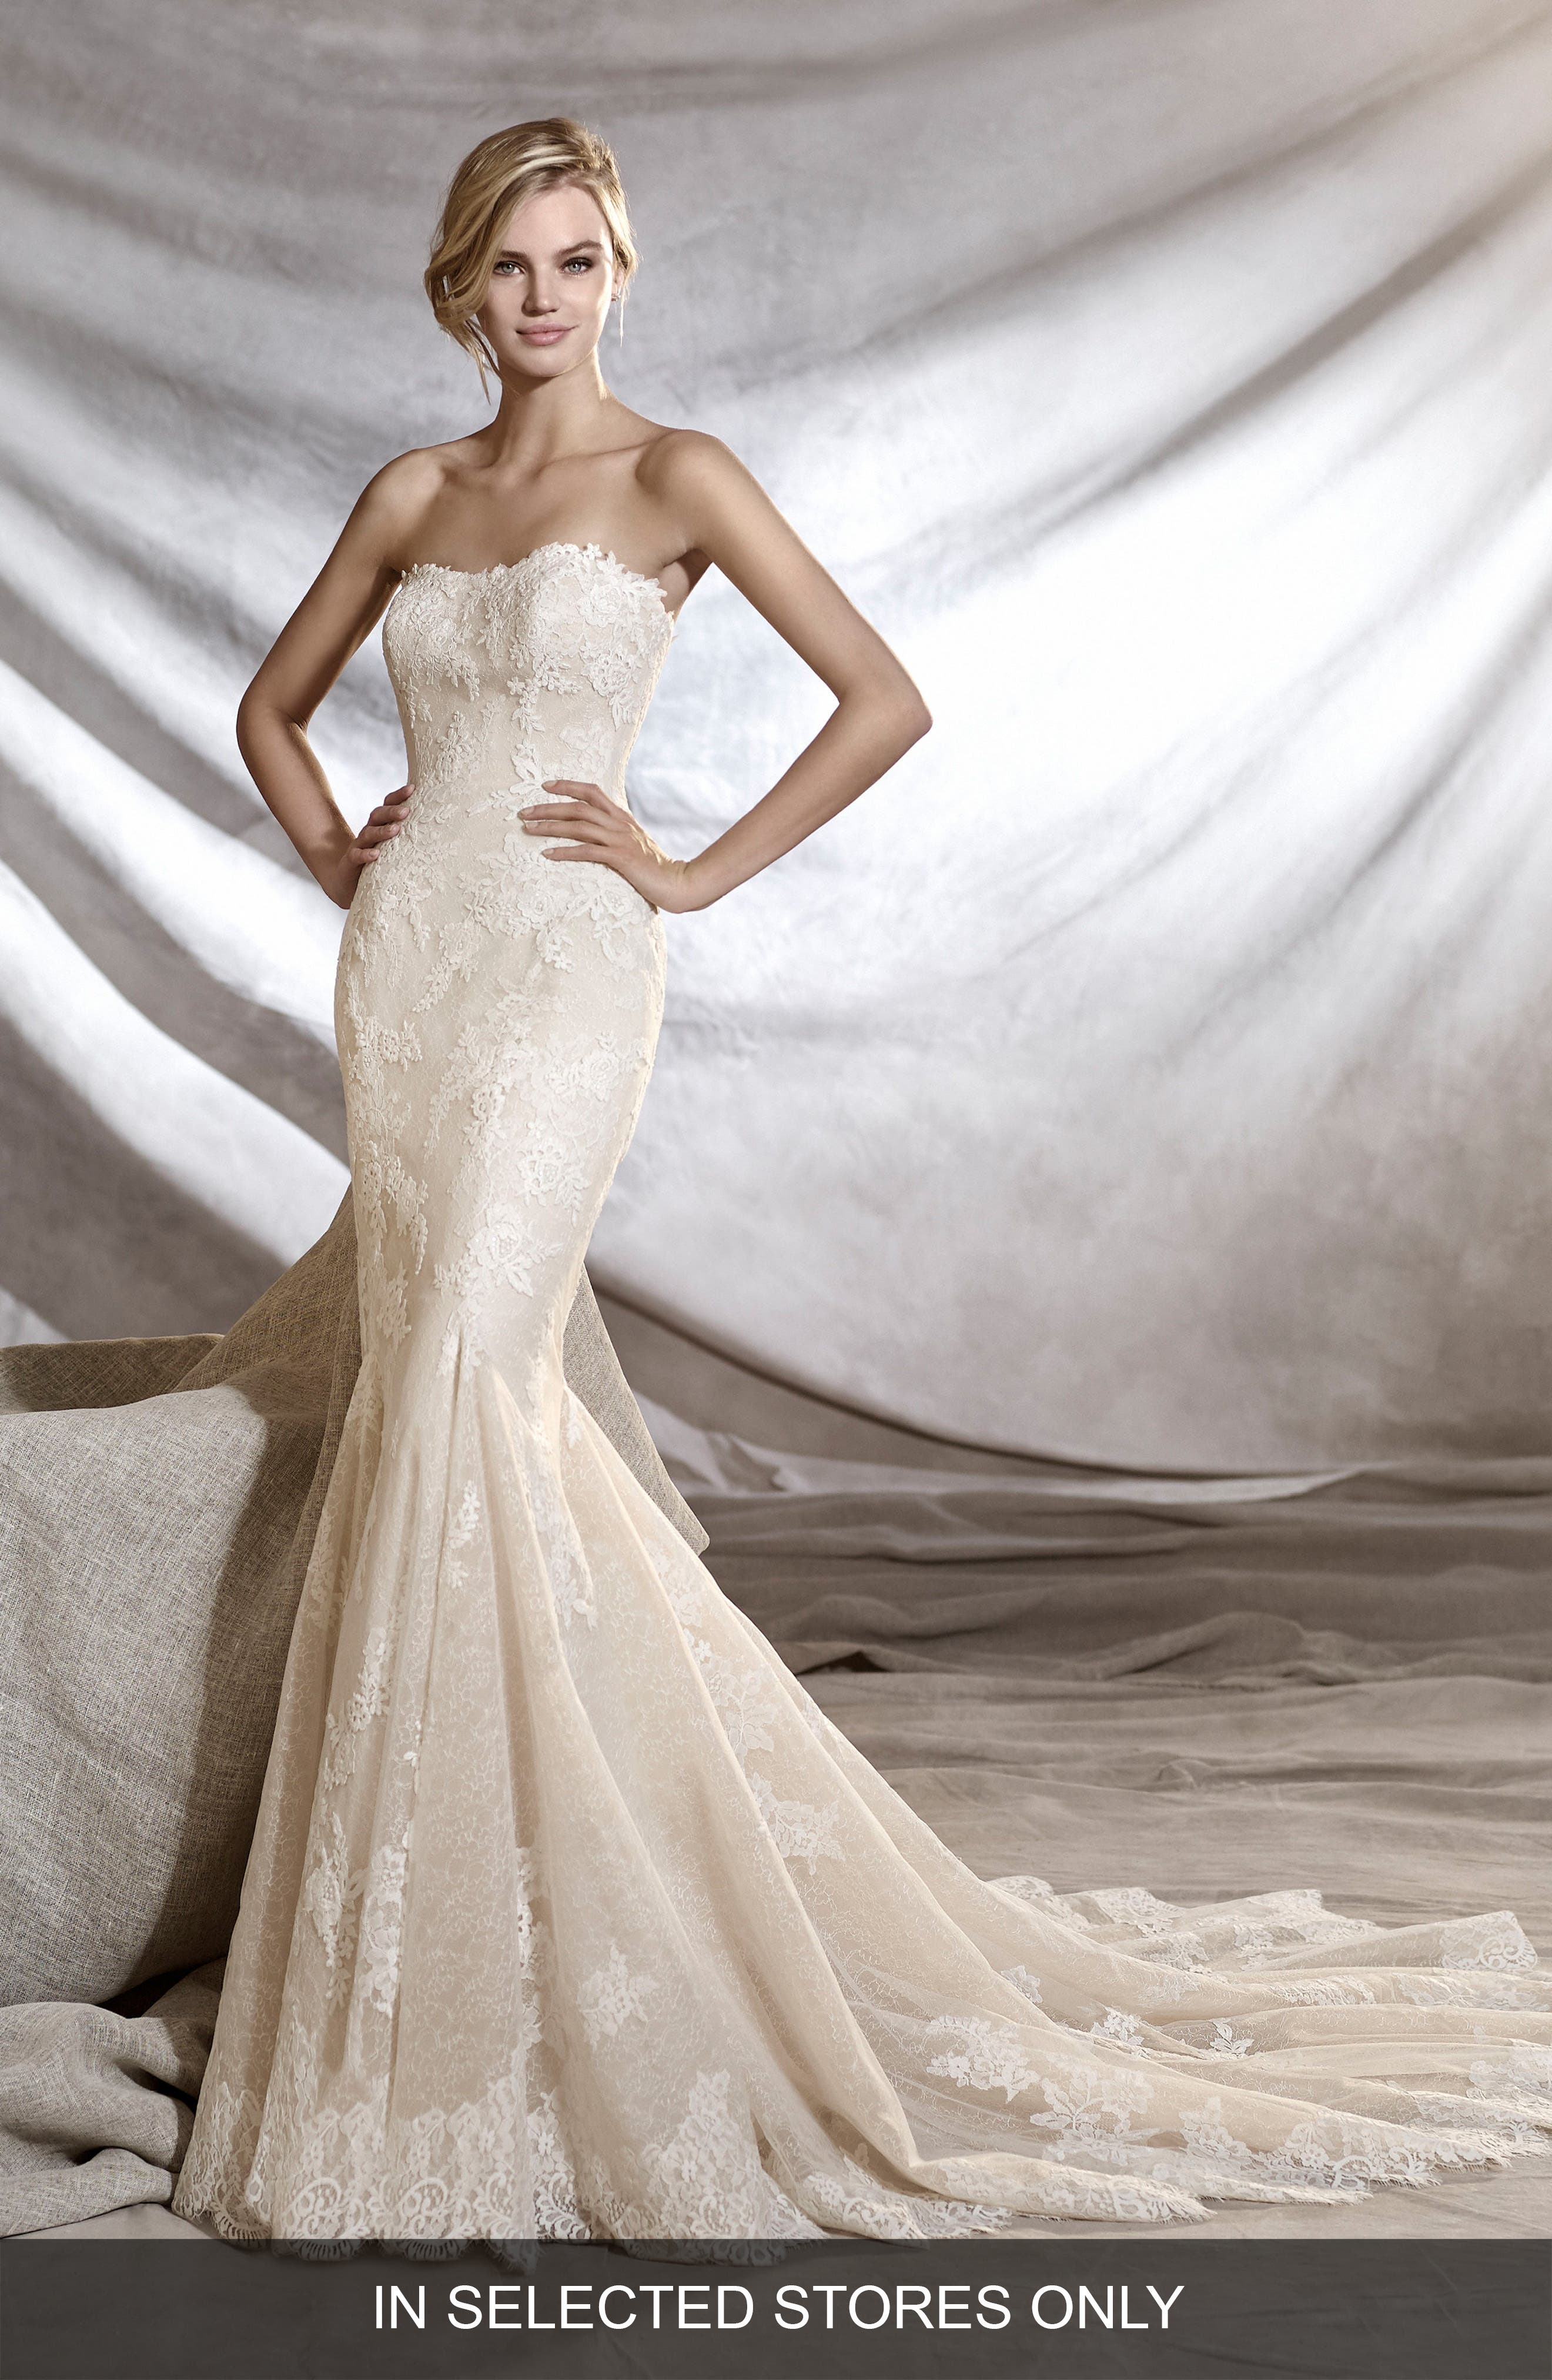 Orinoco Strapless Tulle & Lace Mermaid Gown,                         Main,                         color, Off White/Light Bg